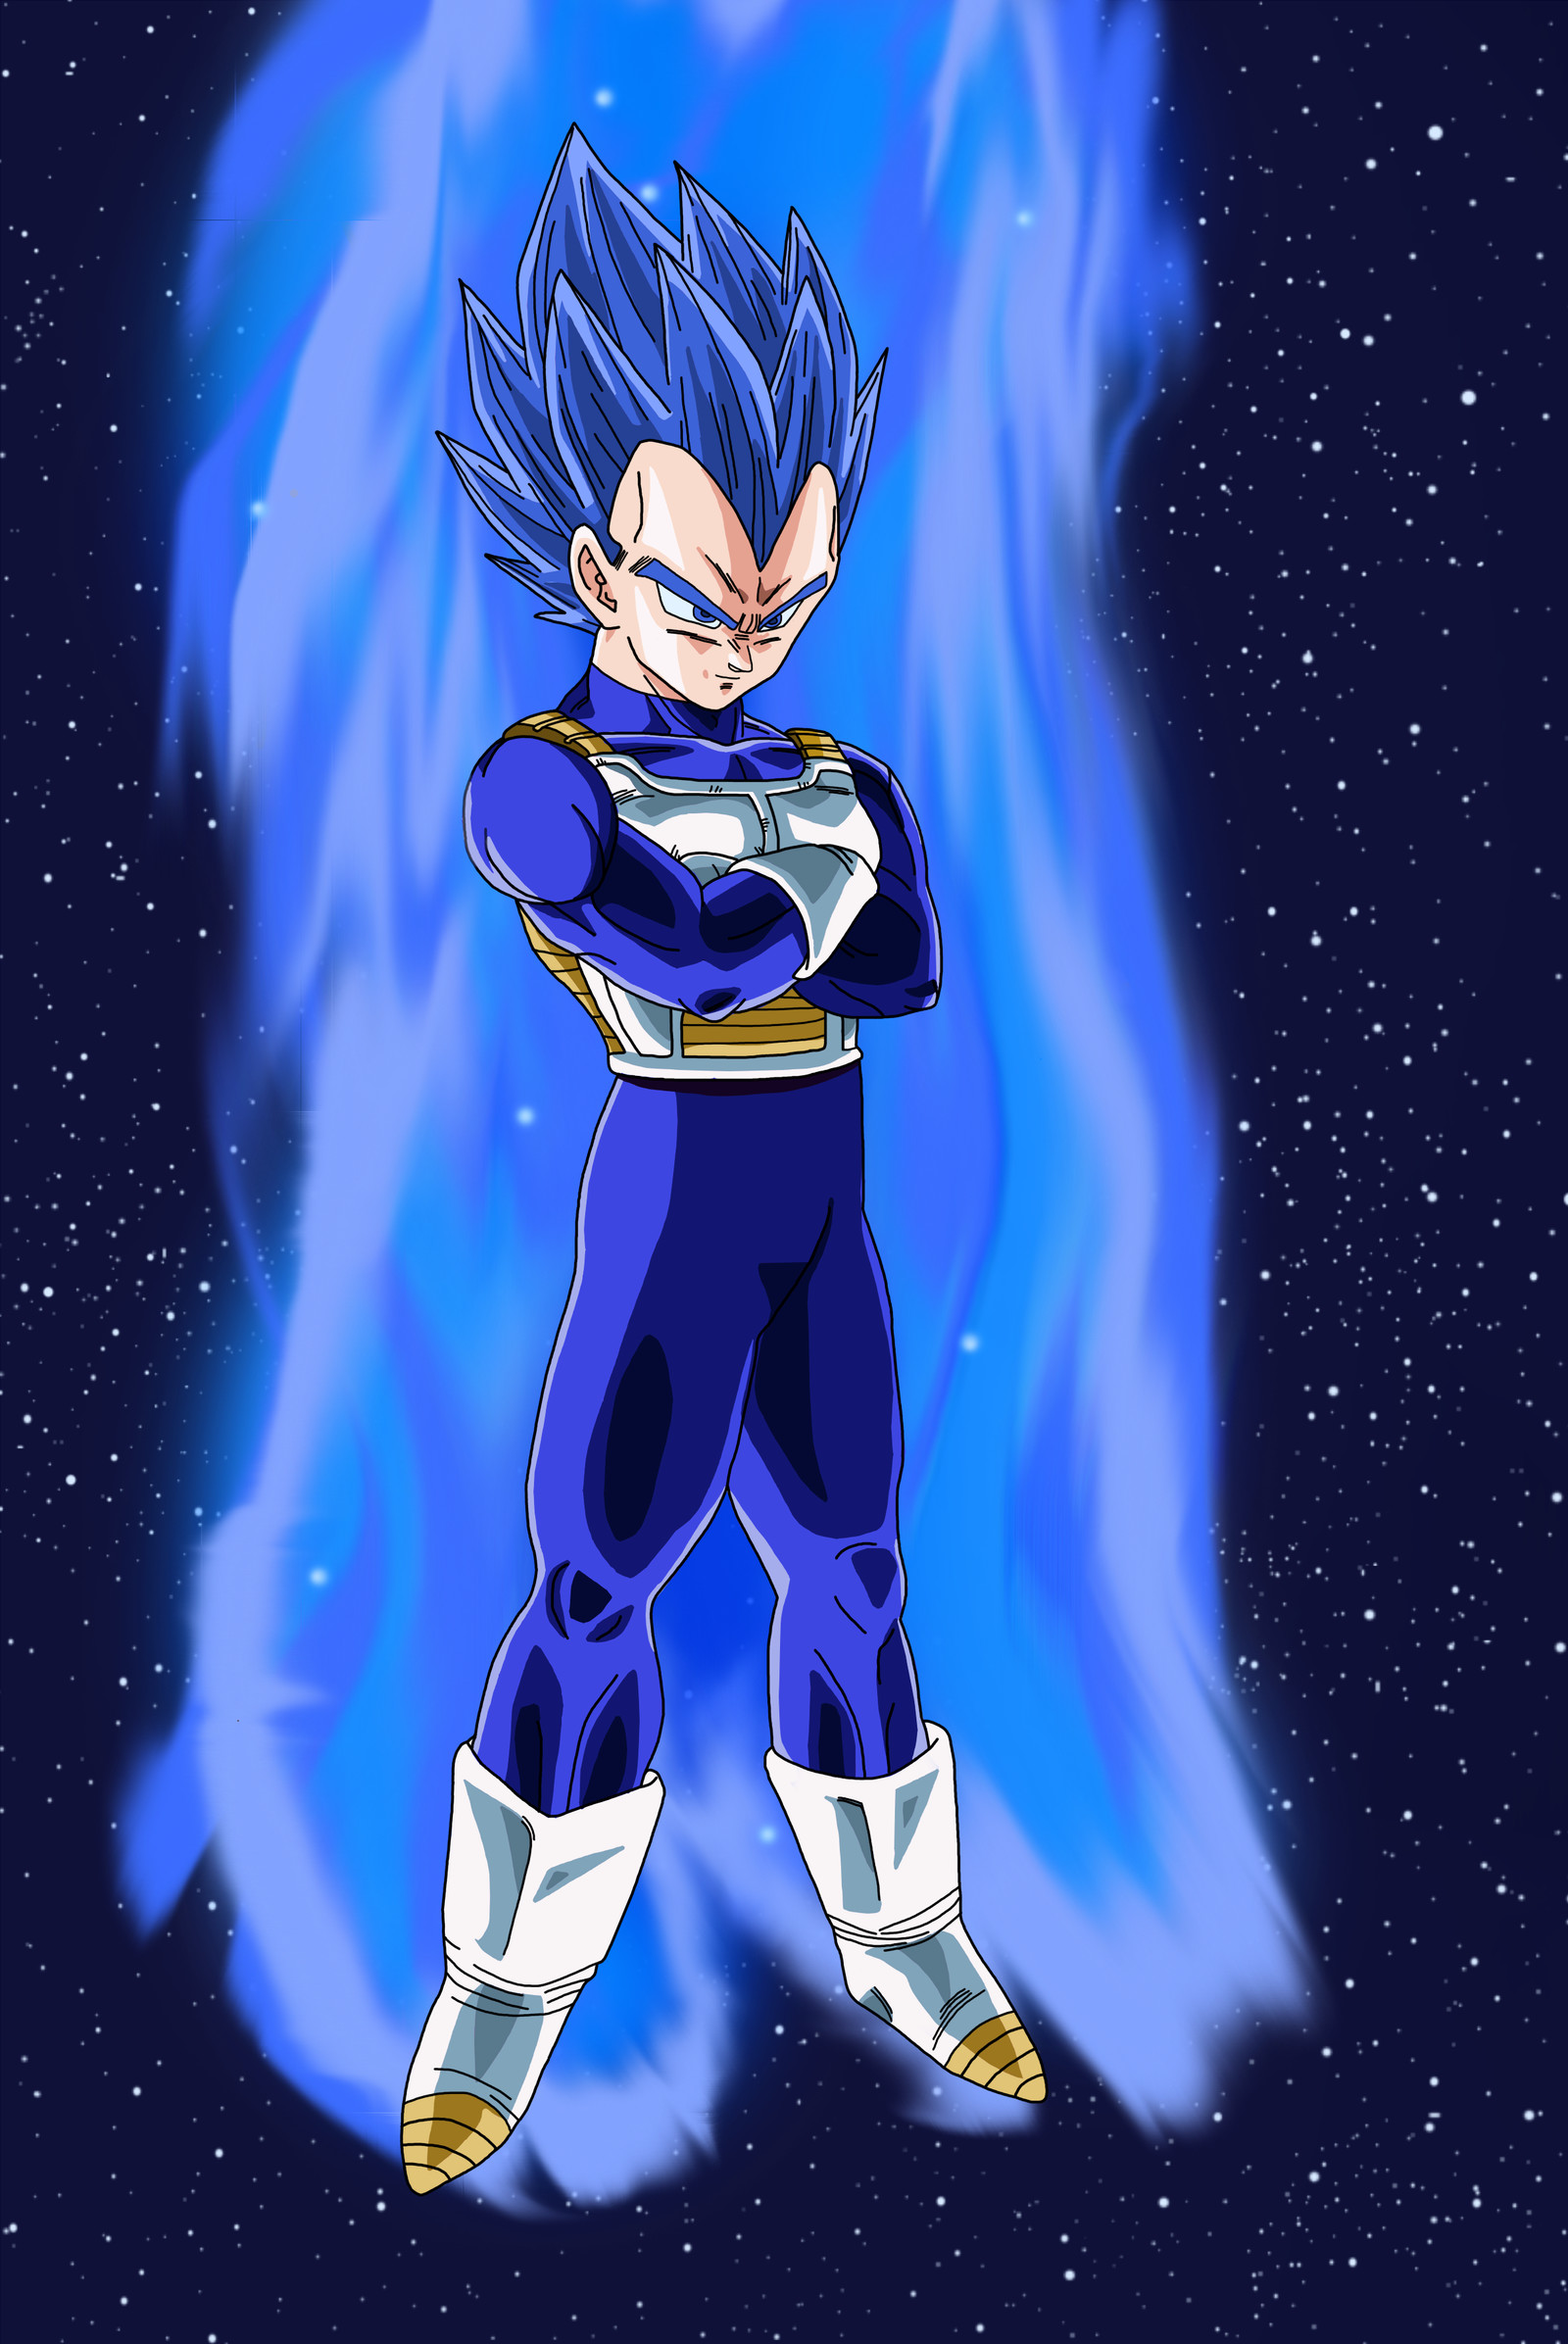 259 best dbz images on Pinterest | Dragonball z, Dragons and Funny stuff